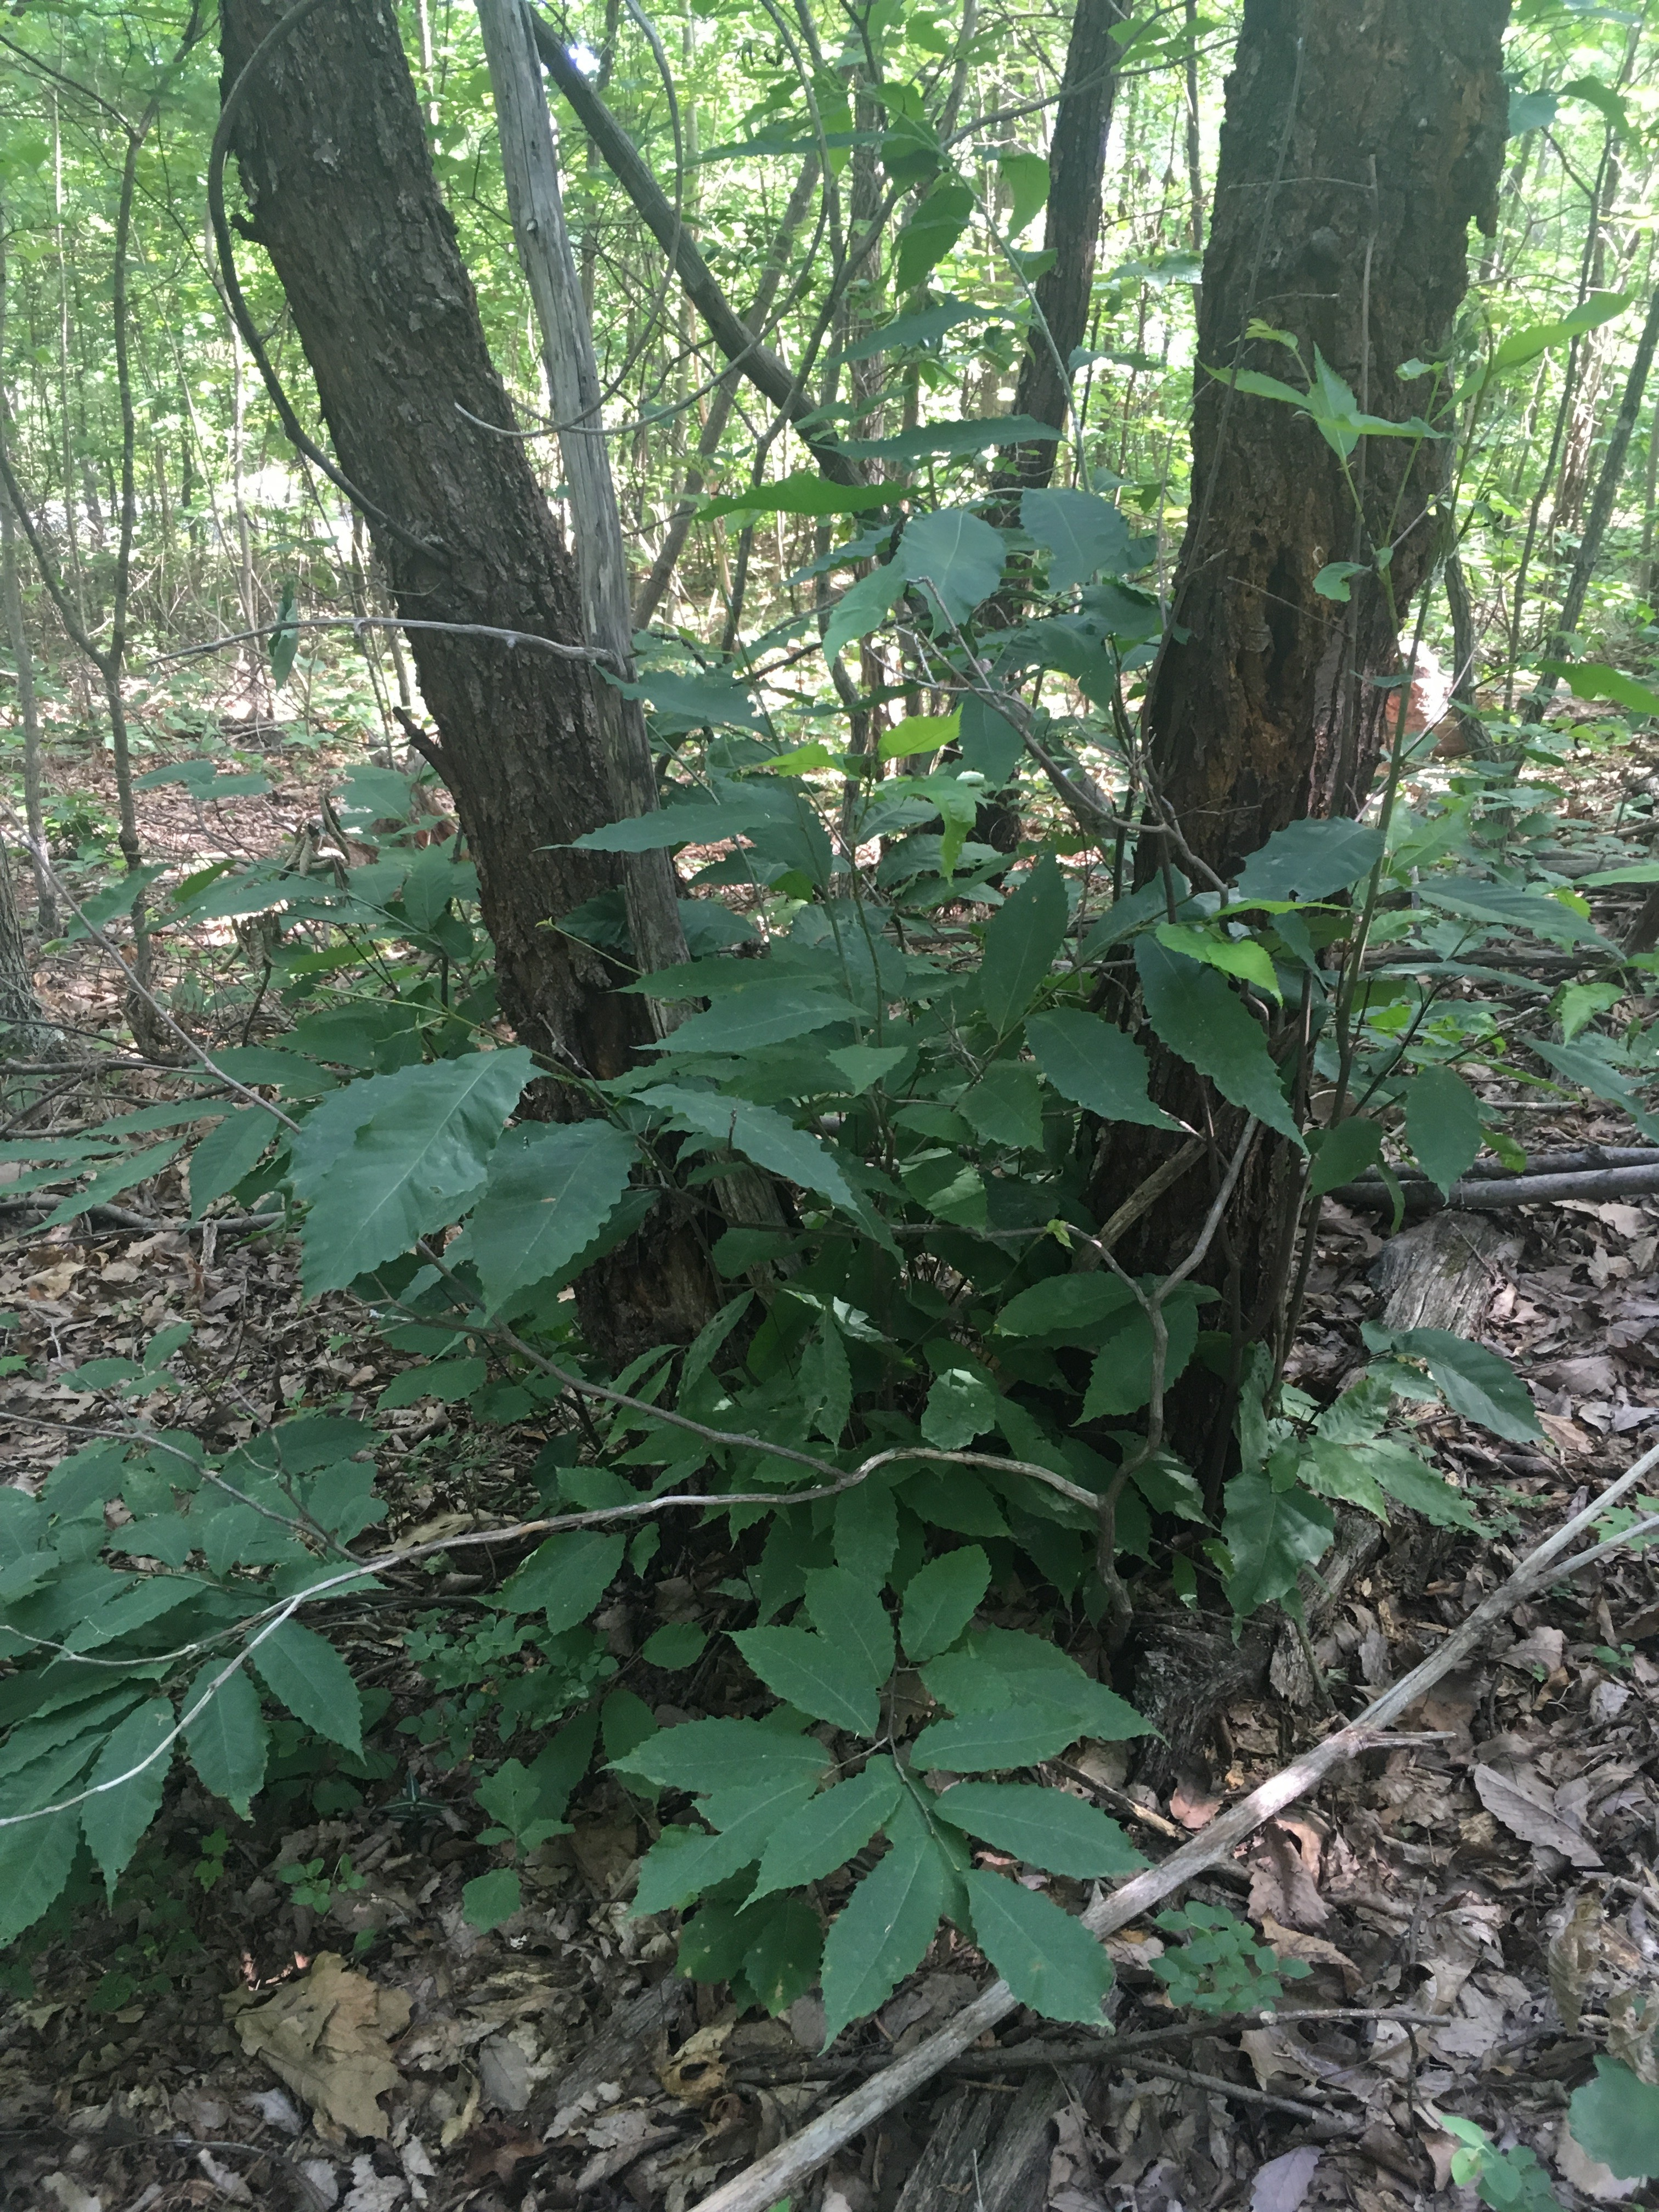 Typical appearance of an American chestnut in the wild. There are small, 5' tall sprouts coming from the base of bigger, blight-killed stems.